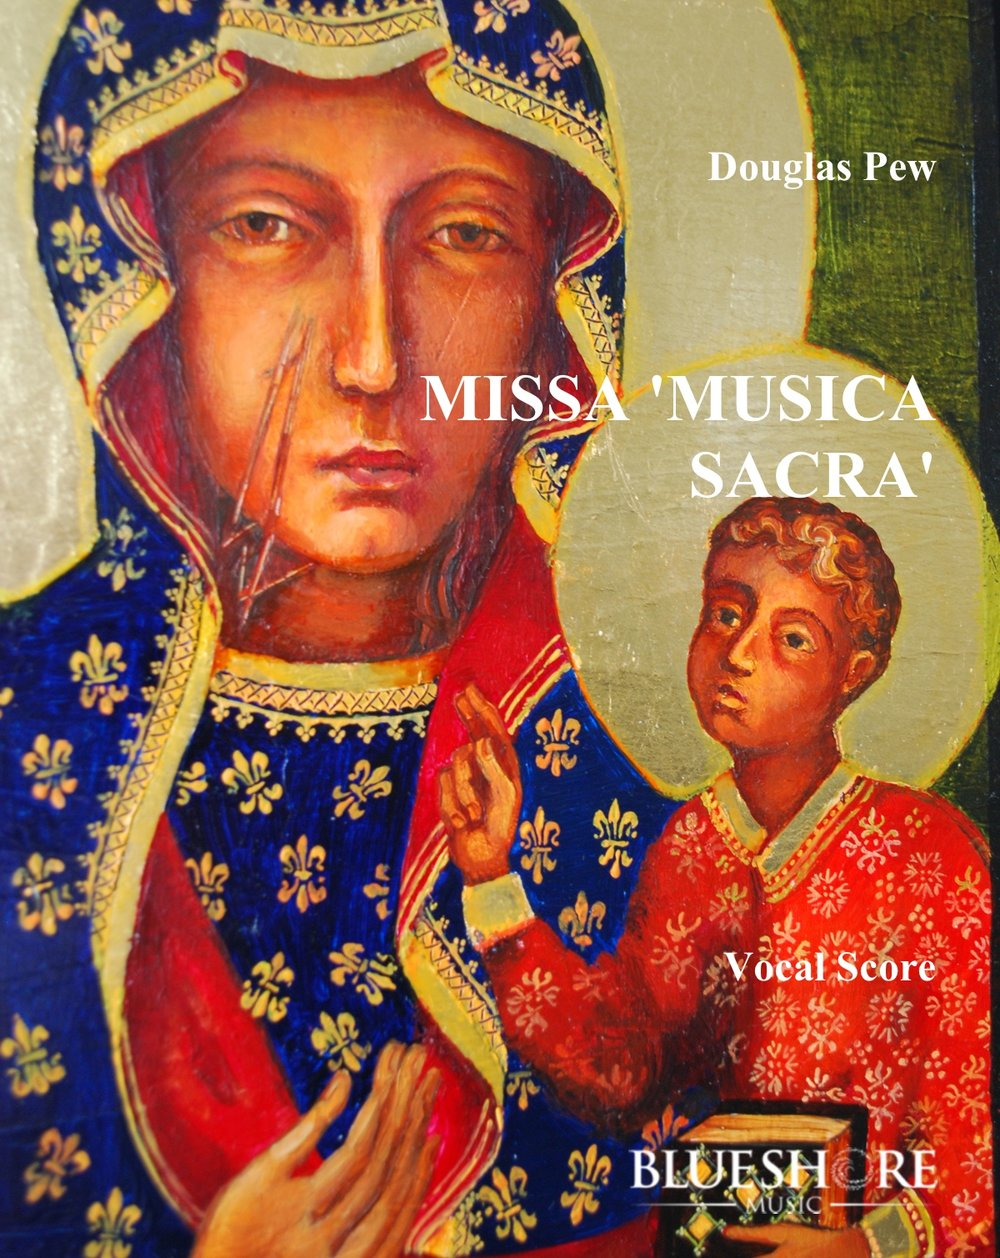 Missa 'Musica Sacra', for Chorus and Organ